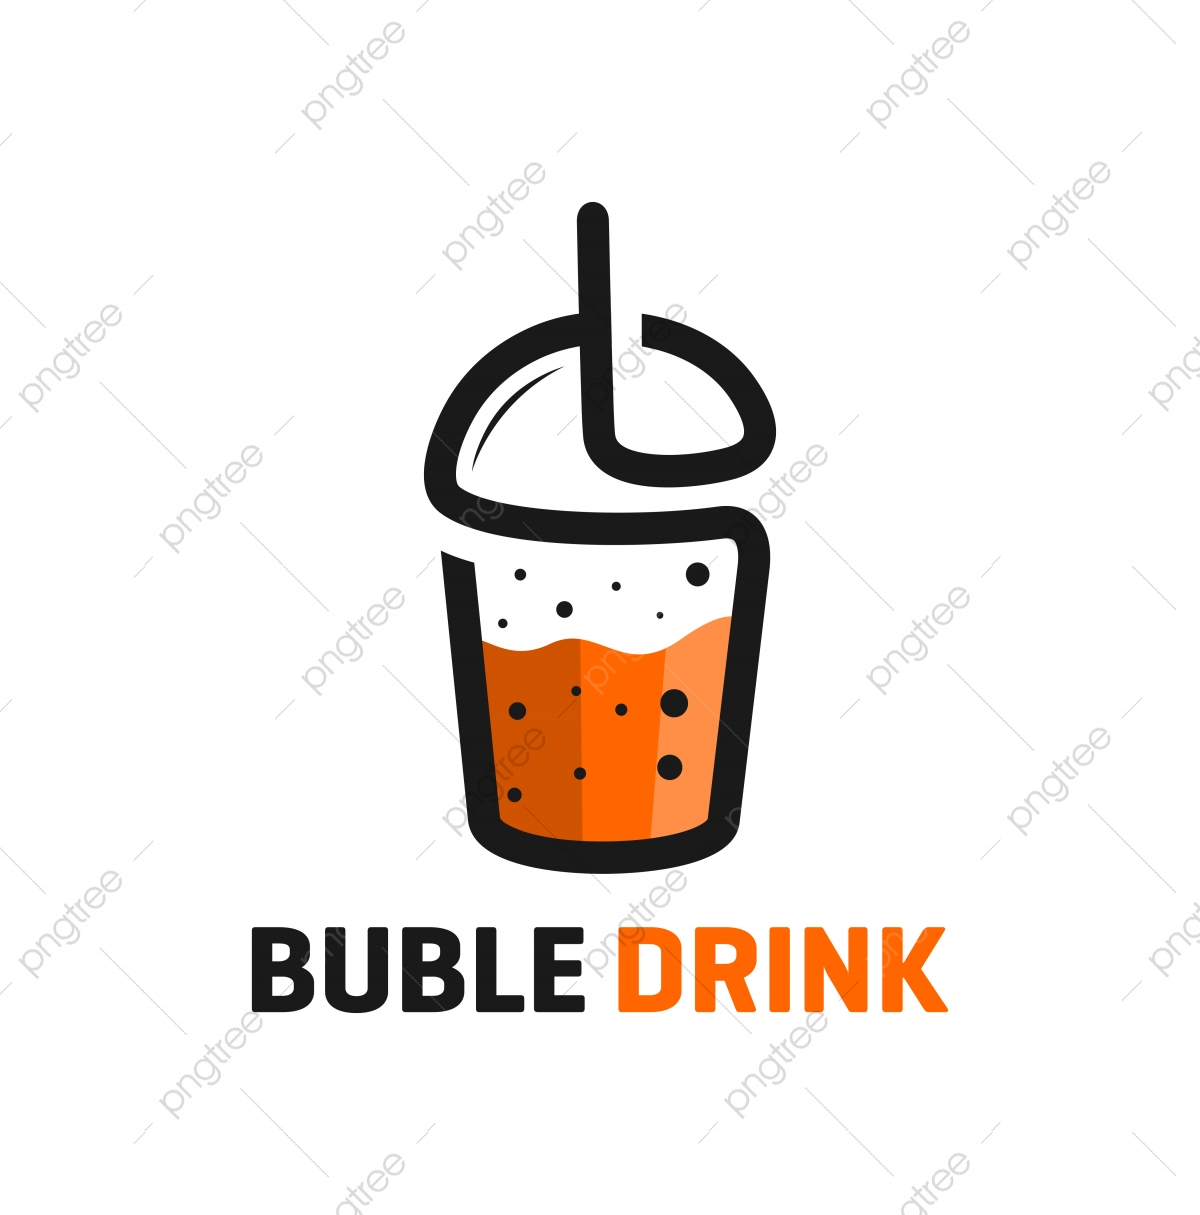 boba png images vector and psd files free download on pngtree https pngtree com freepng bubble drink outline logo 5430158 html